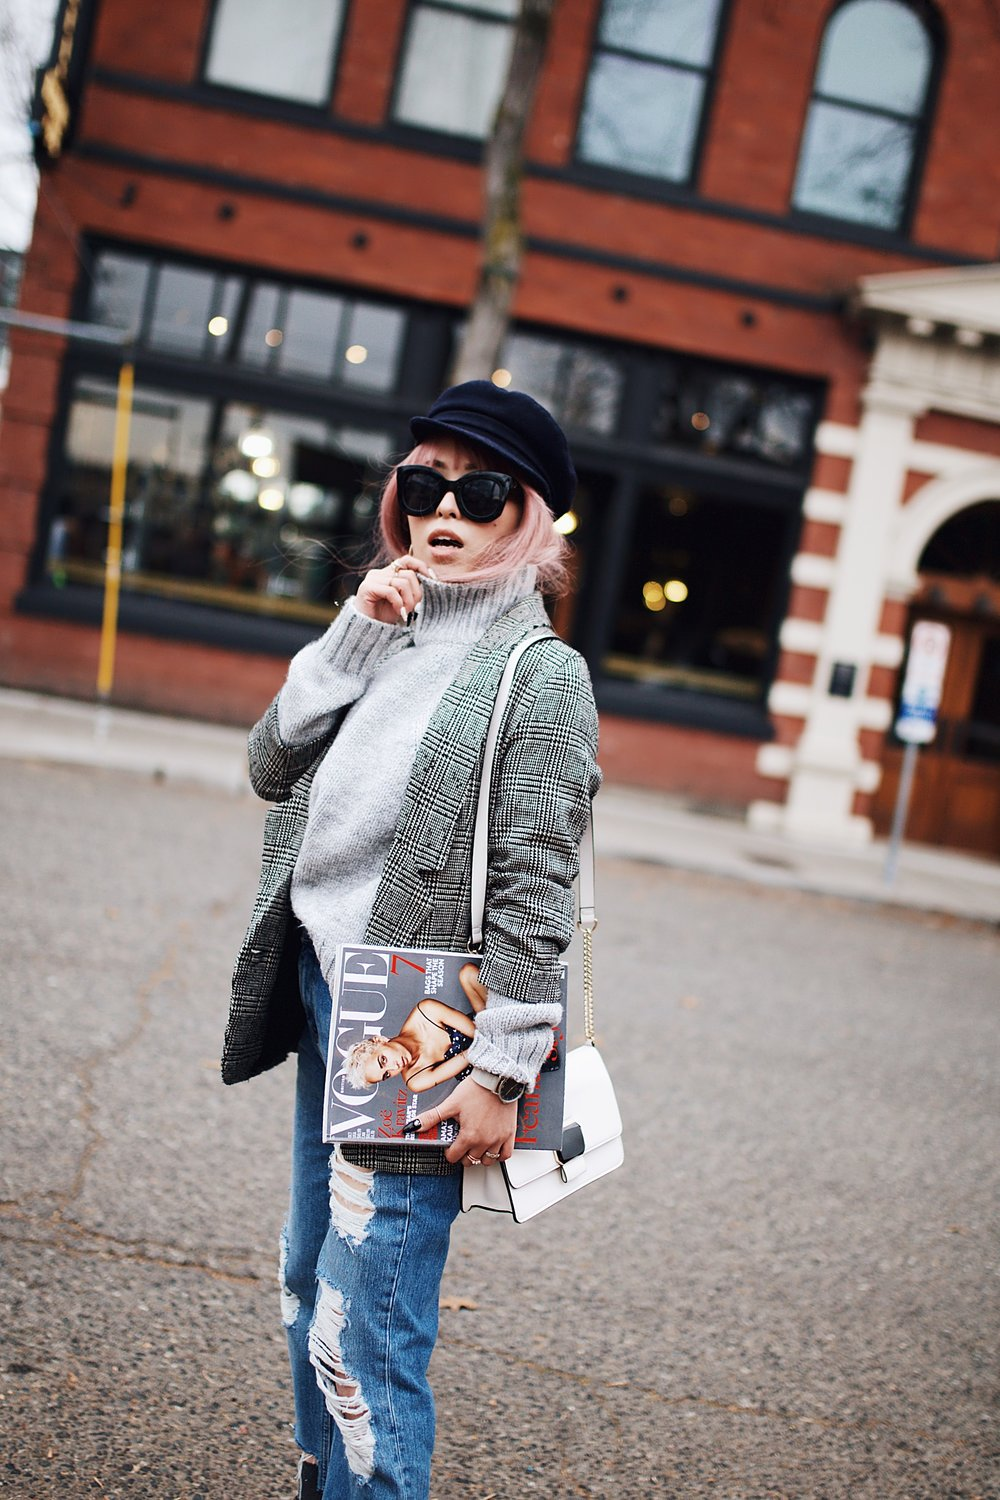 Zara Gray Turtleneck Sweater-Nordstrom Checked Blazer-ASOS Distressed frayed hem jeans-NAIGAI Glitter Ankle Socks-Black scrappy sandals-H&M White Crossbody Bag-Aritzia Fisherman Hat-Aika's Love Closet-Seattle fashion style blogger-pink hair-Japanese 4